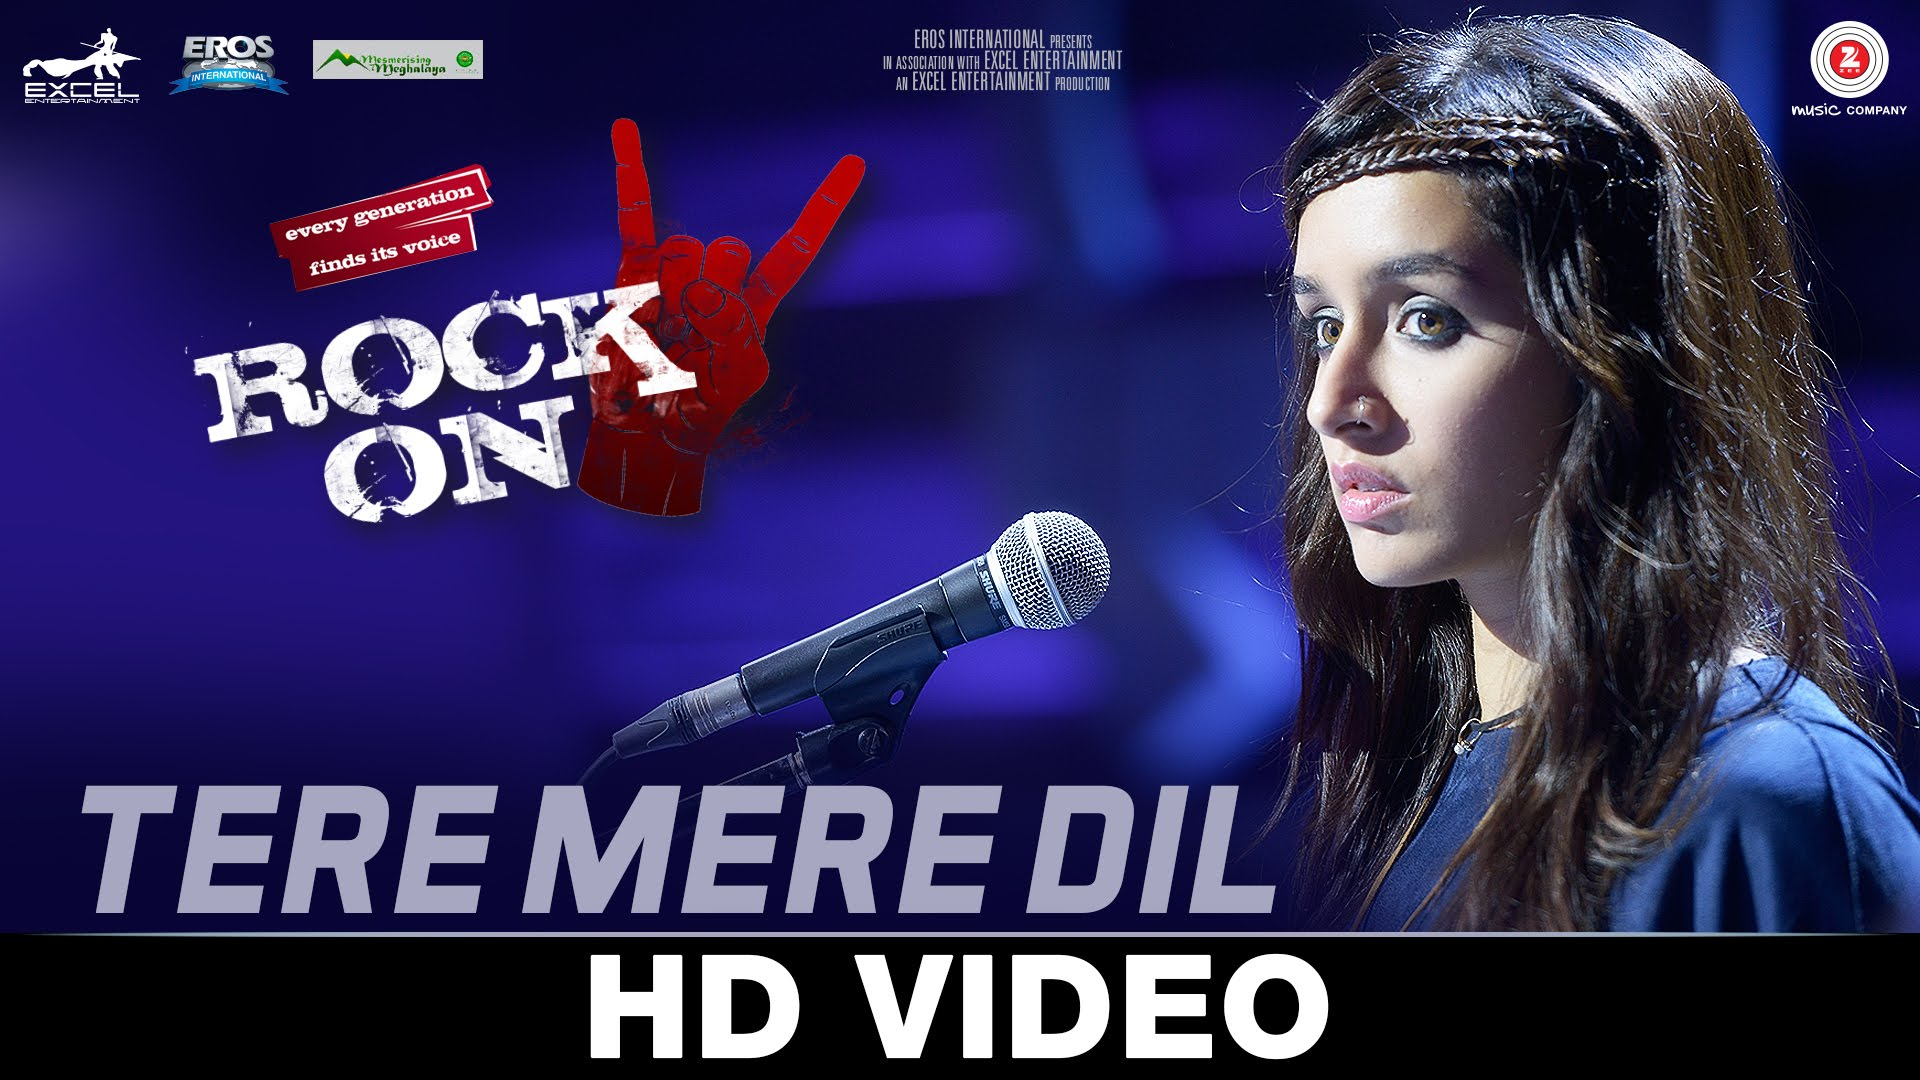 Shraddha Kapoor makes us relive the 'Magik' with the song Tere Mere Dil